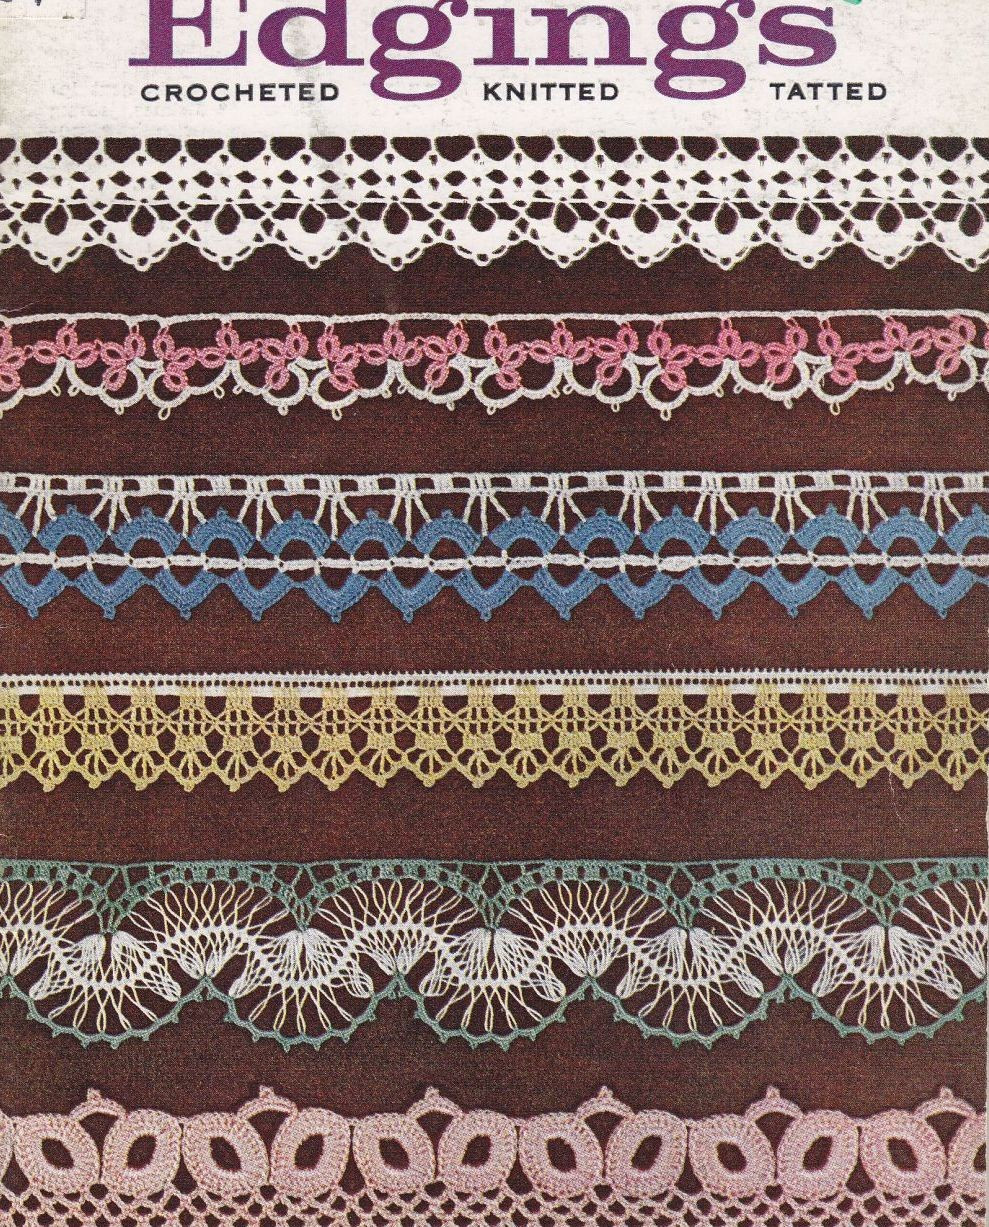 Crochet Lace Edging Luxury Lace Edging Crochet Patterns Free Of Charming 48 Images Crochet Lace Edging